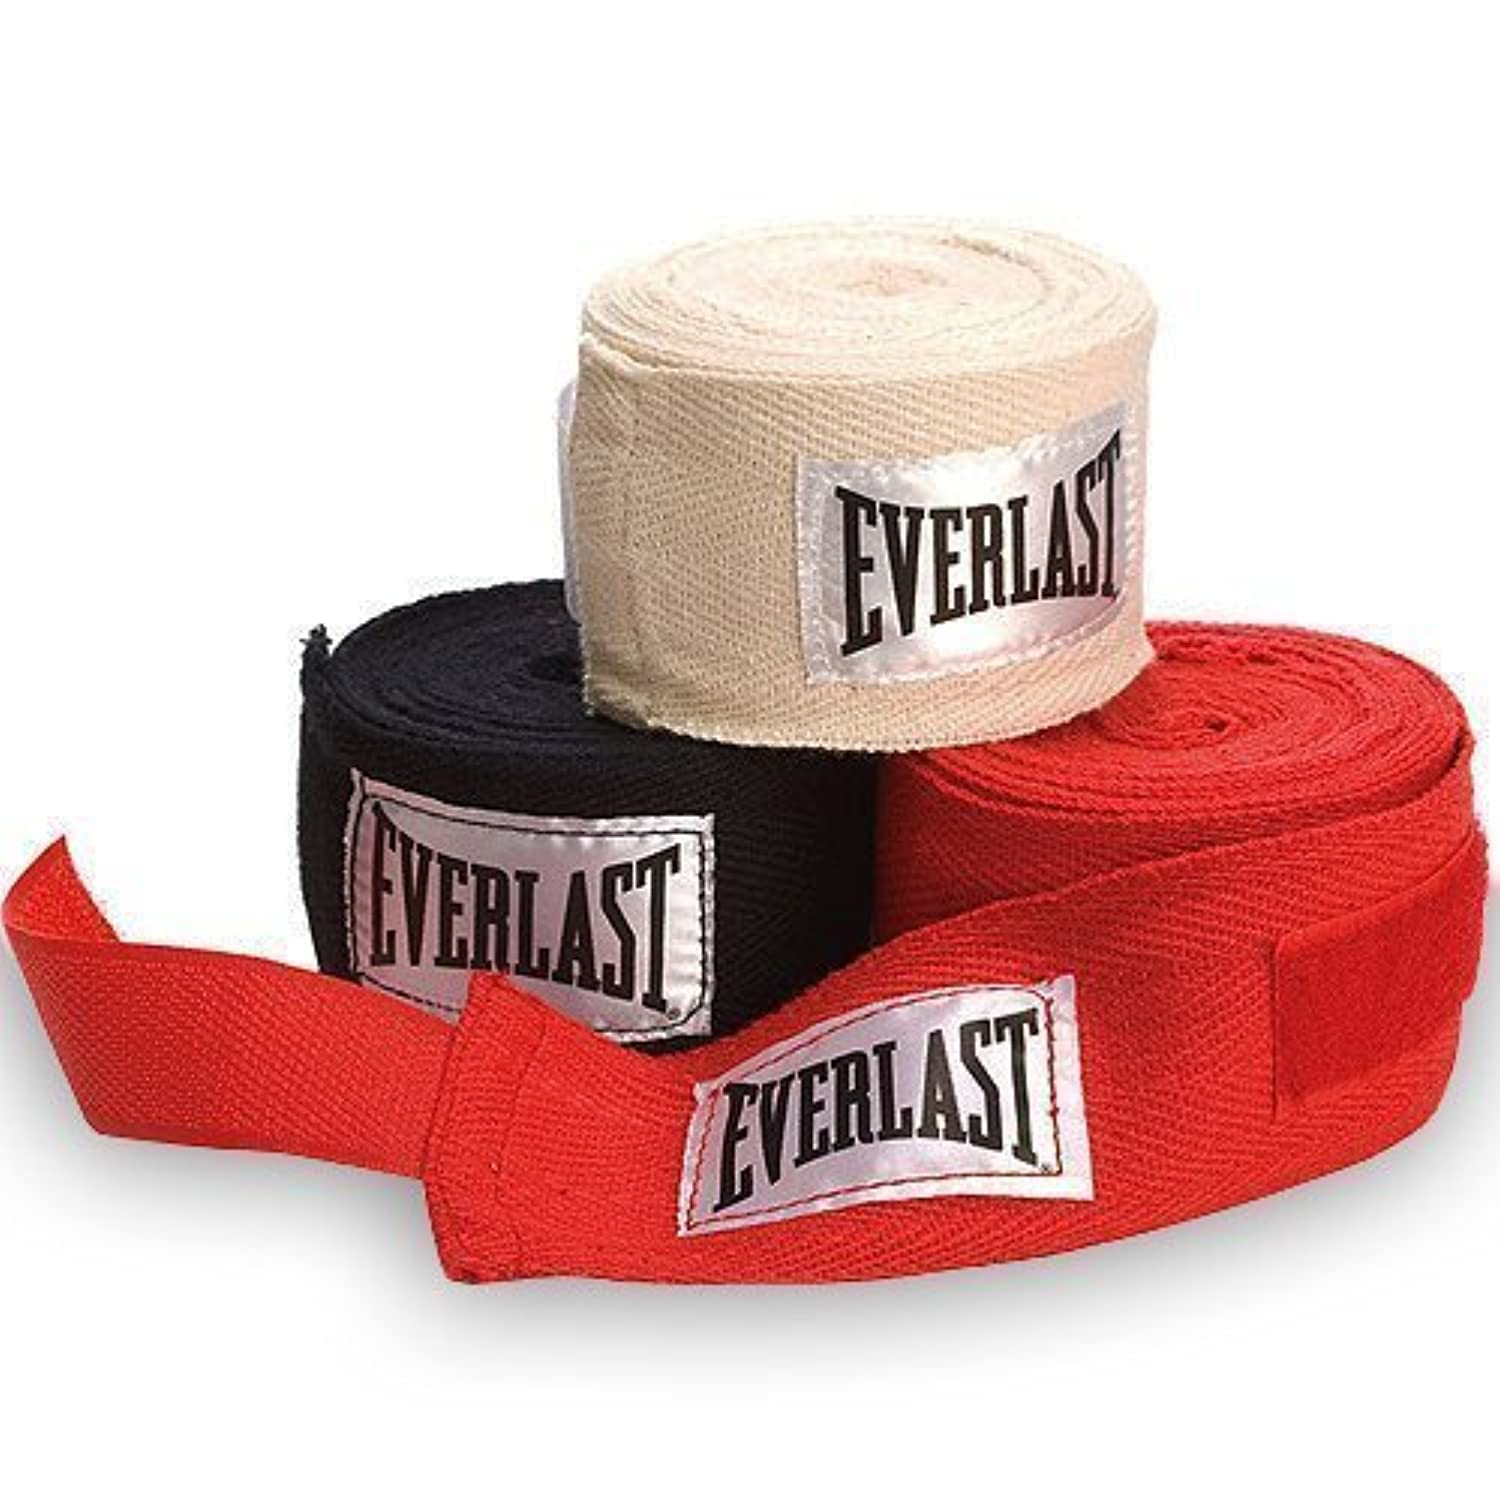 Everlast Hand Wraps - Red, 108 Inch by Everlast